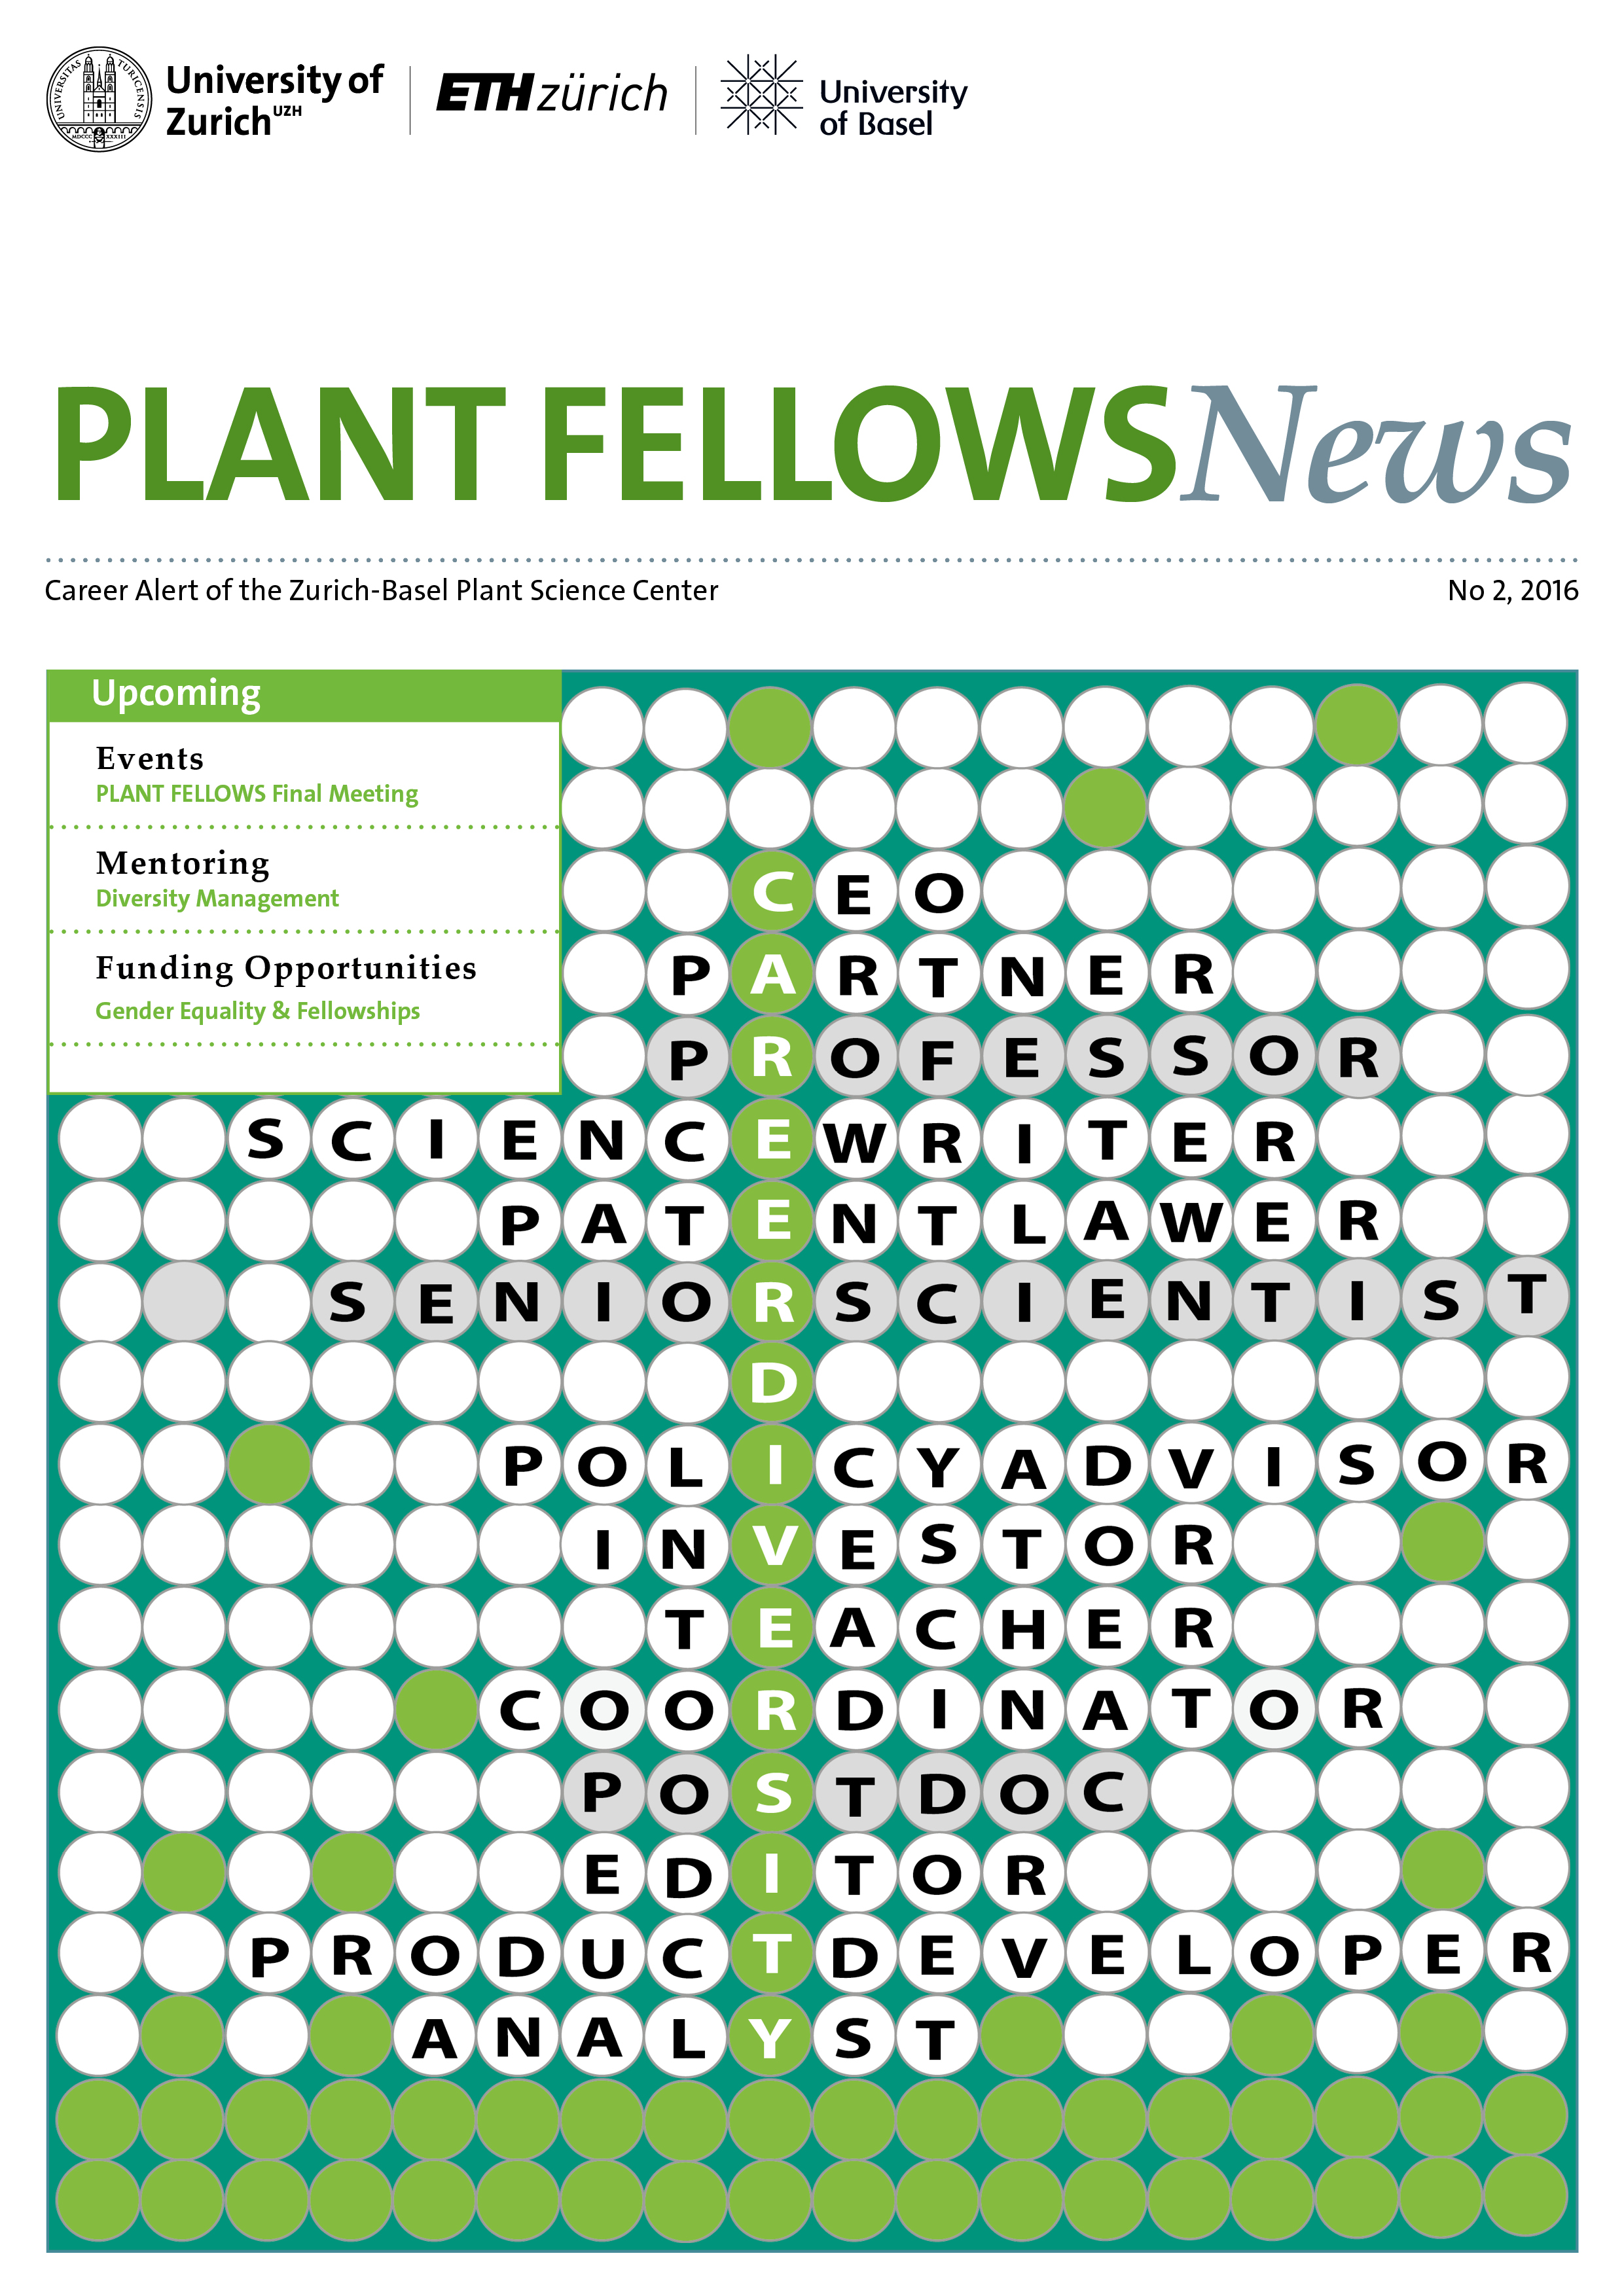 Plant Fellows career alert